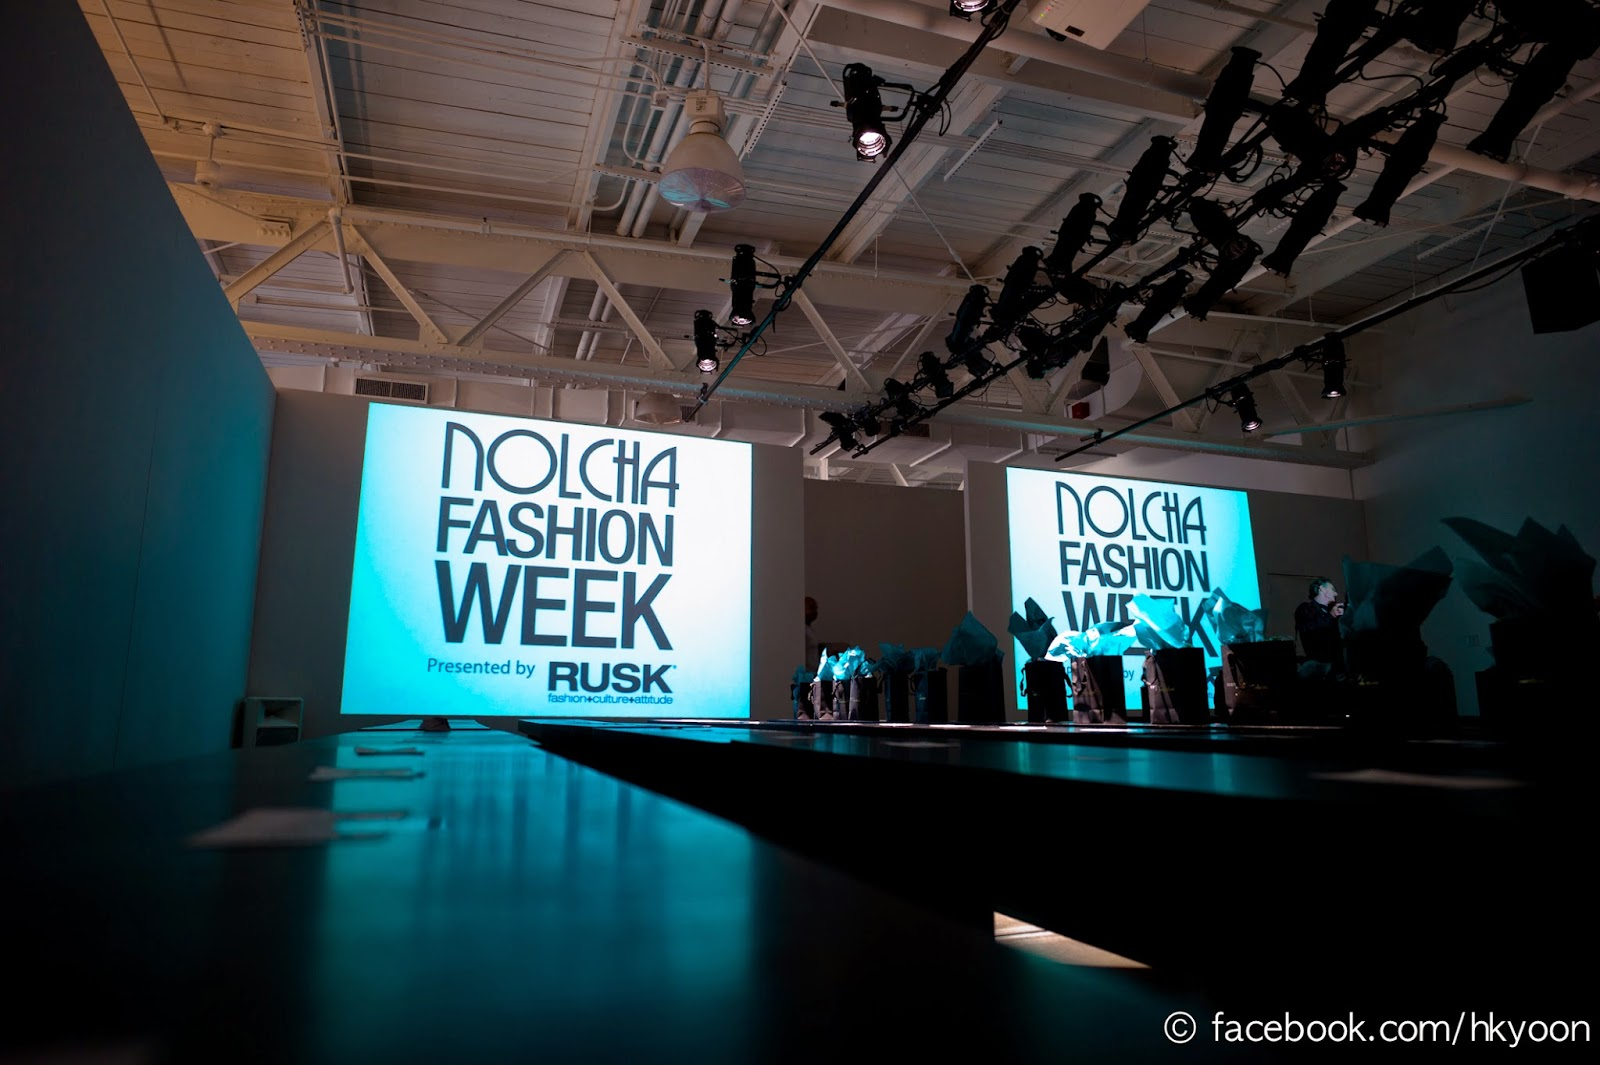 Interview: Kerry Bannigan, Founder of Nolcha Fashion Week